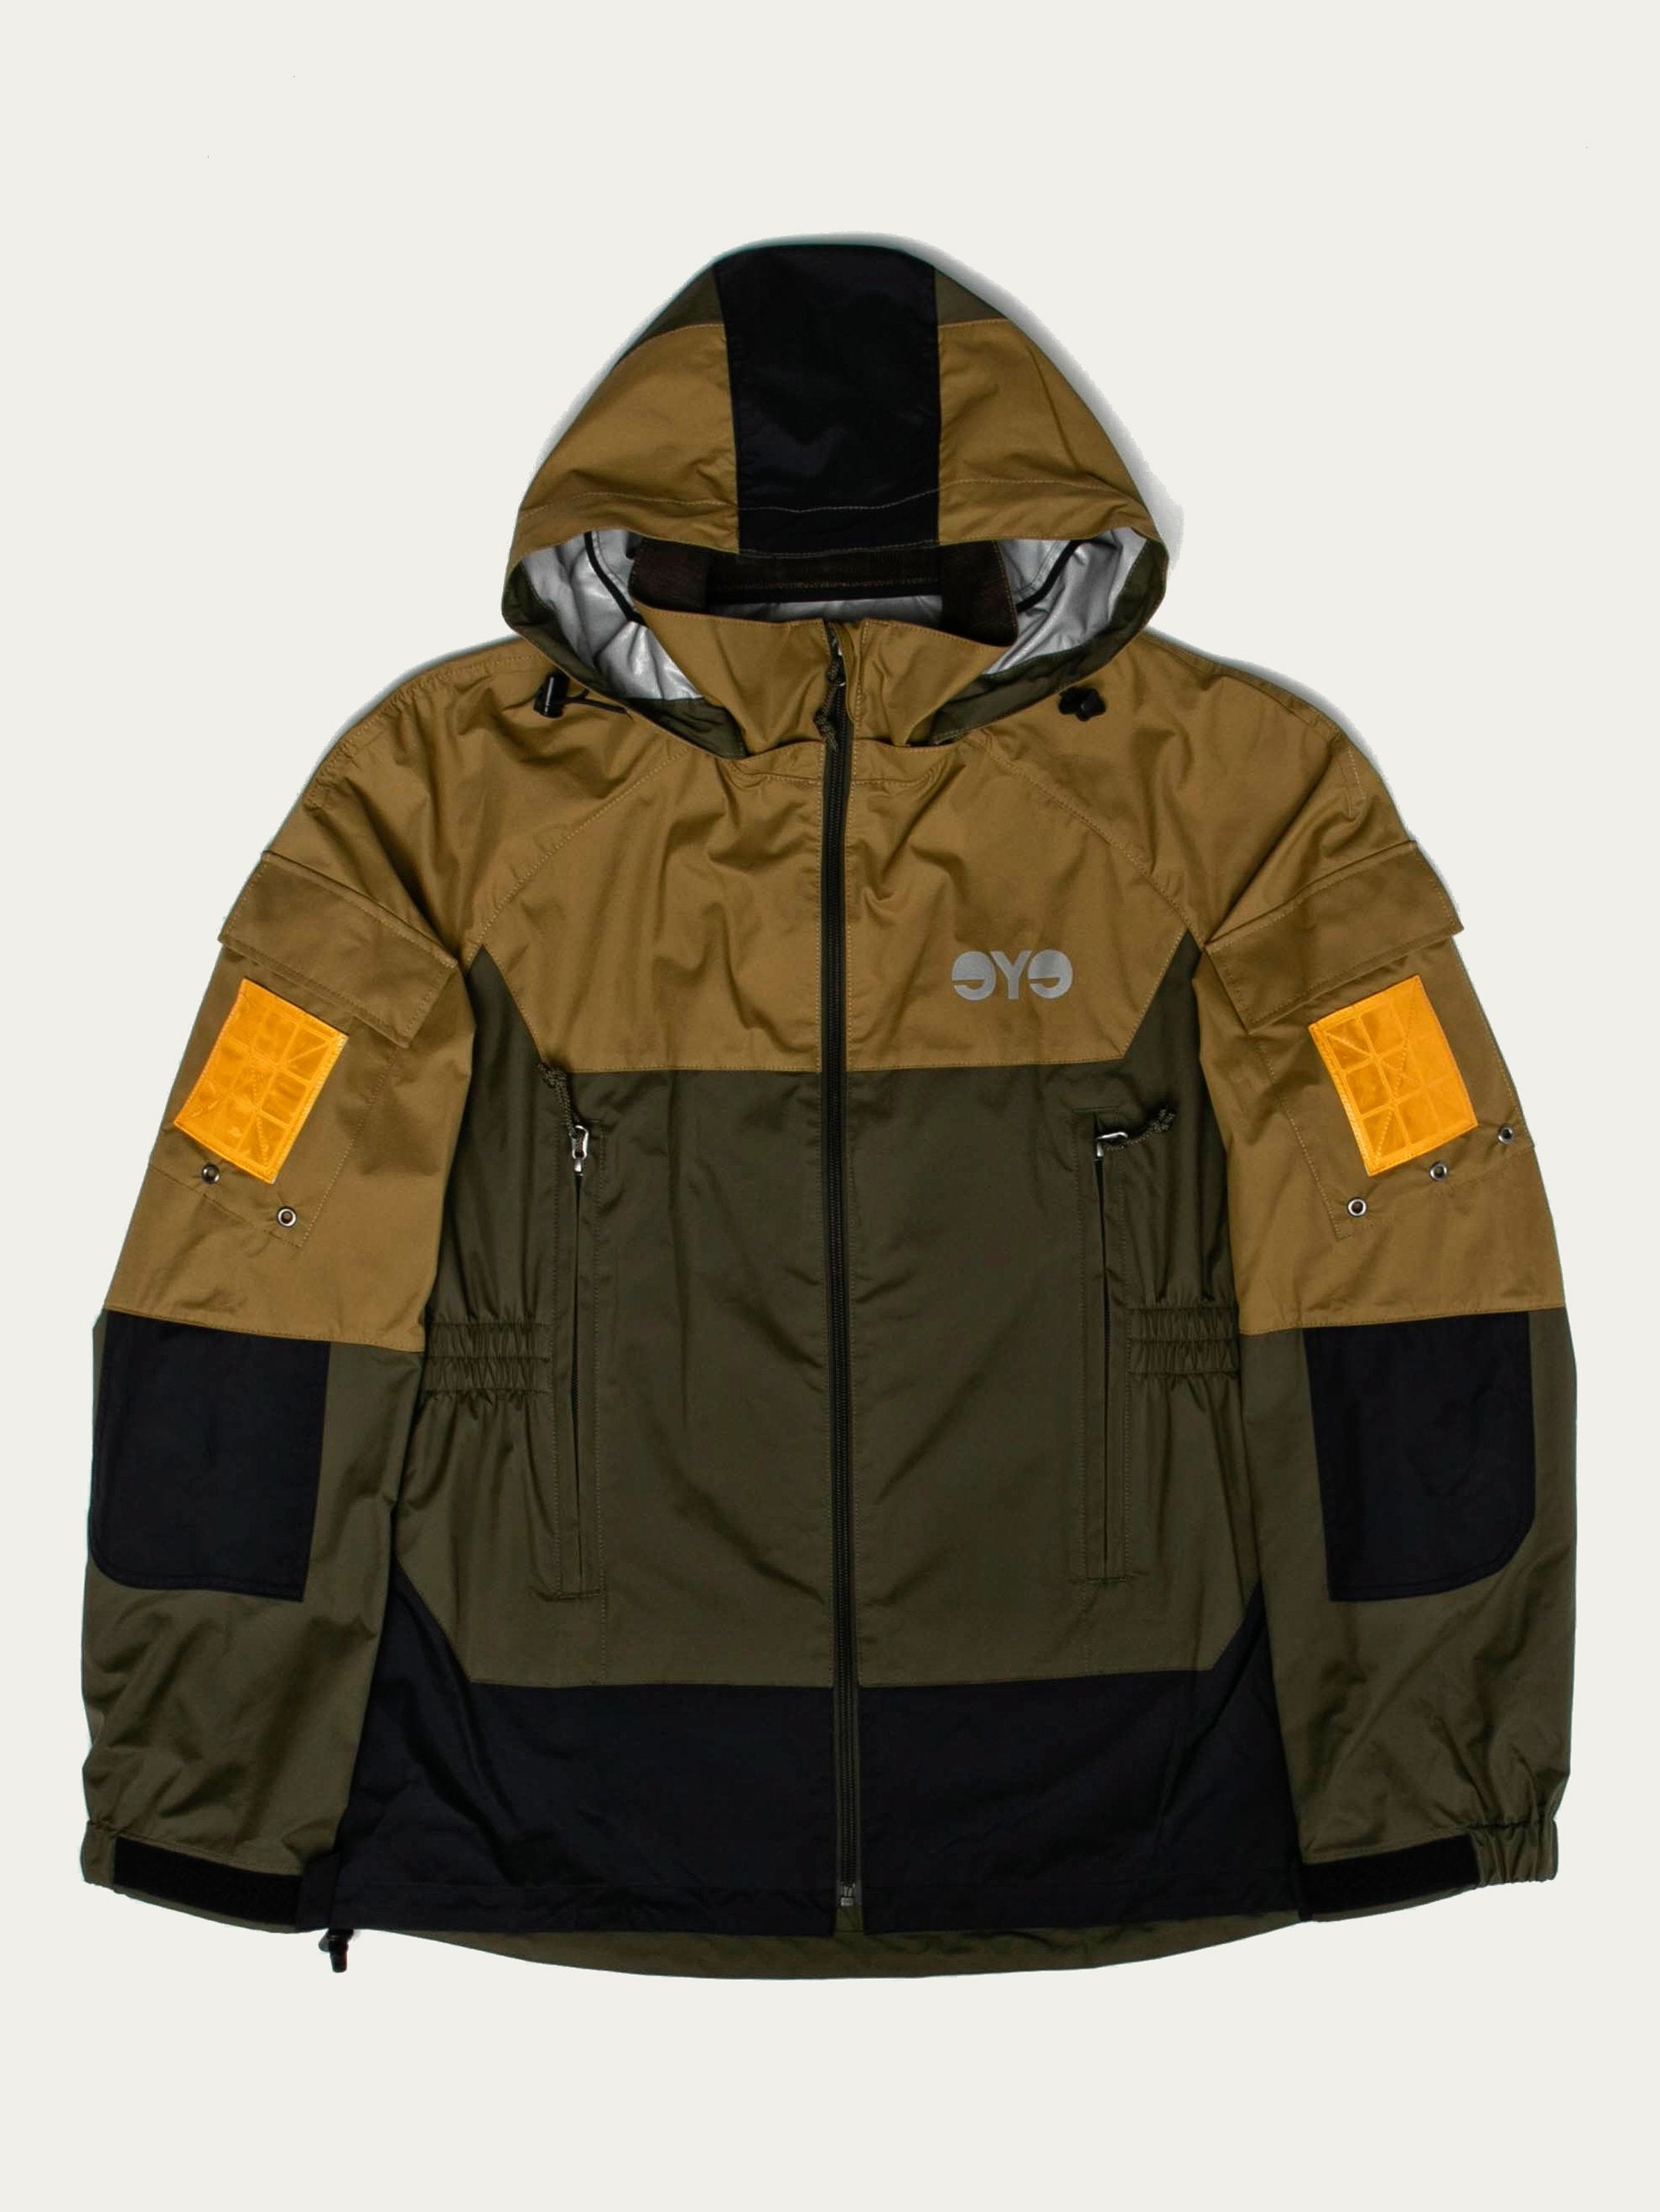 Color-Block Hooded Parka (eYe)